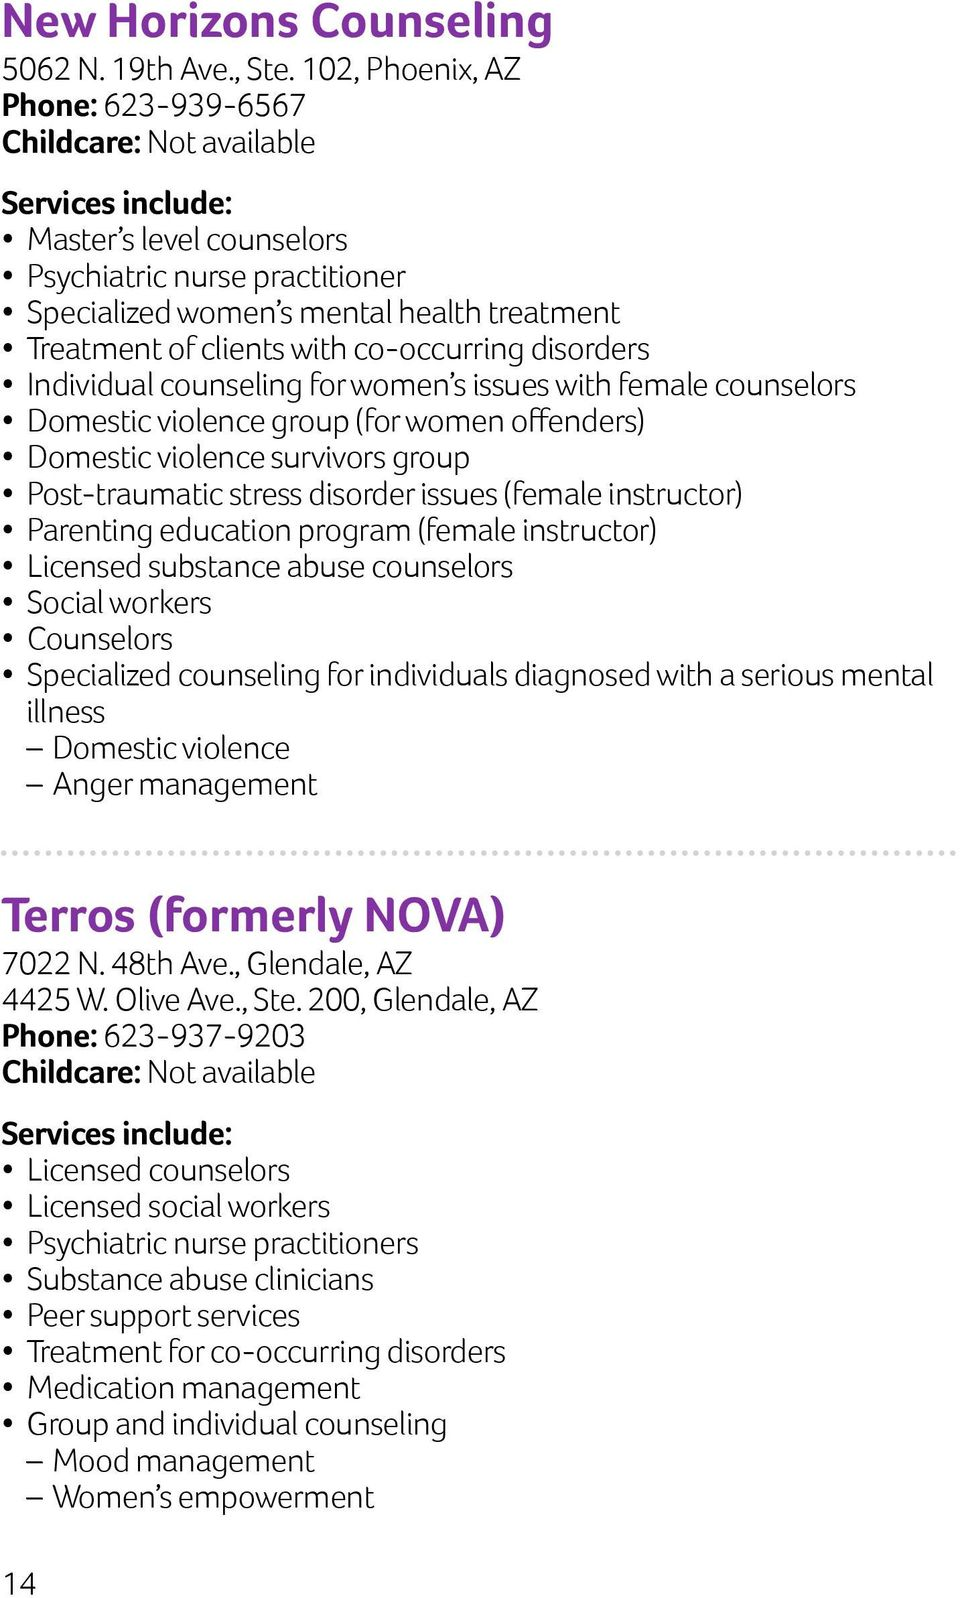 co-occurring disorders Individual counseling for women s issues with female counselors Domestic violence group (for women offenders) Domestic violence survivors group Post-traumatic stress disorder